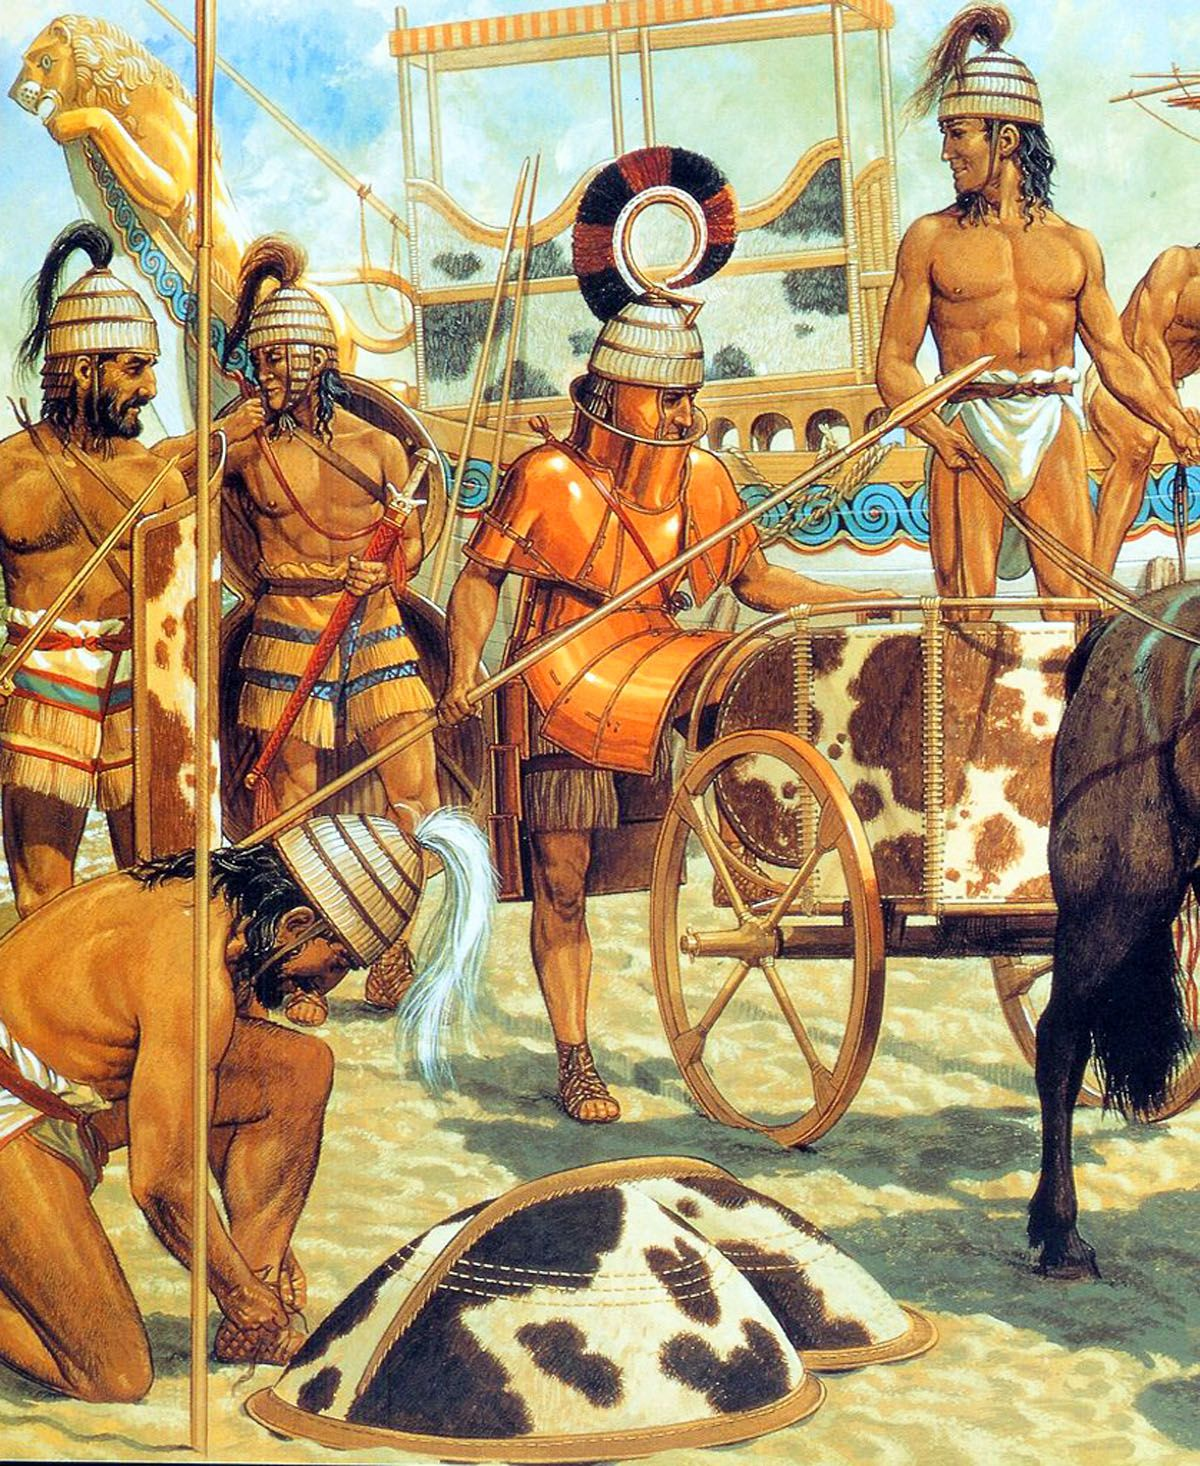 A history of the roman empire based on the trojan legend